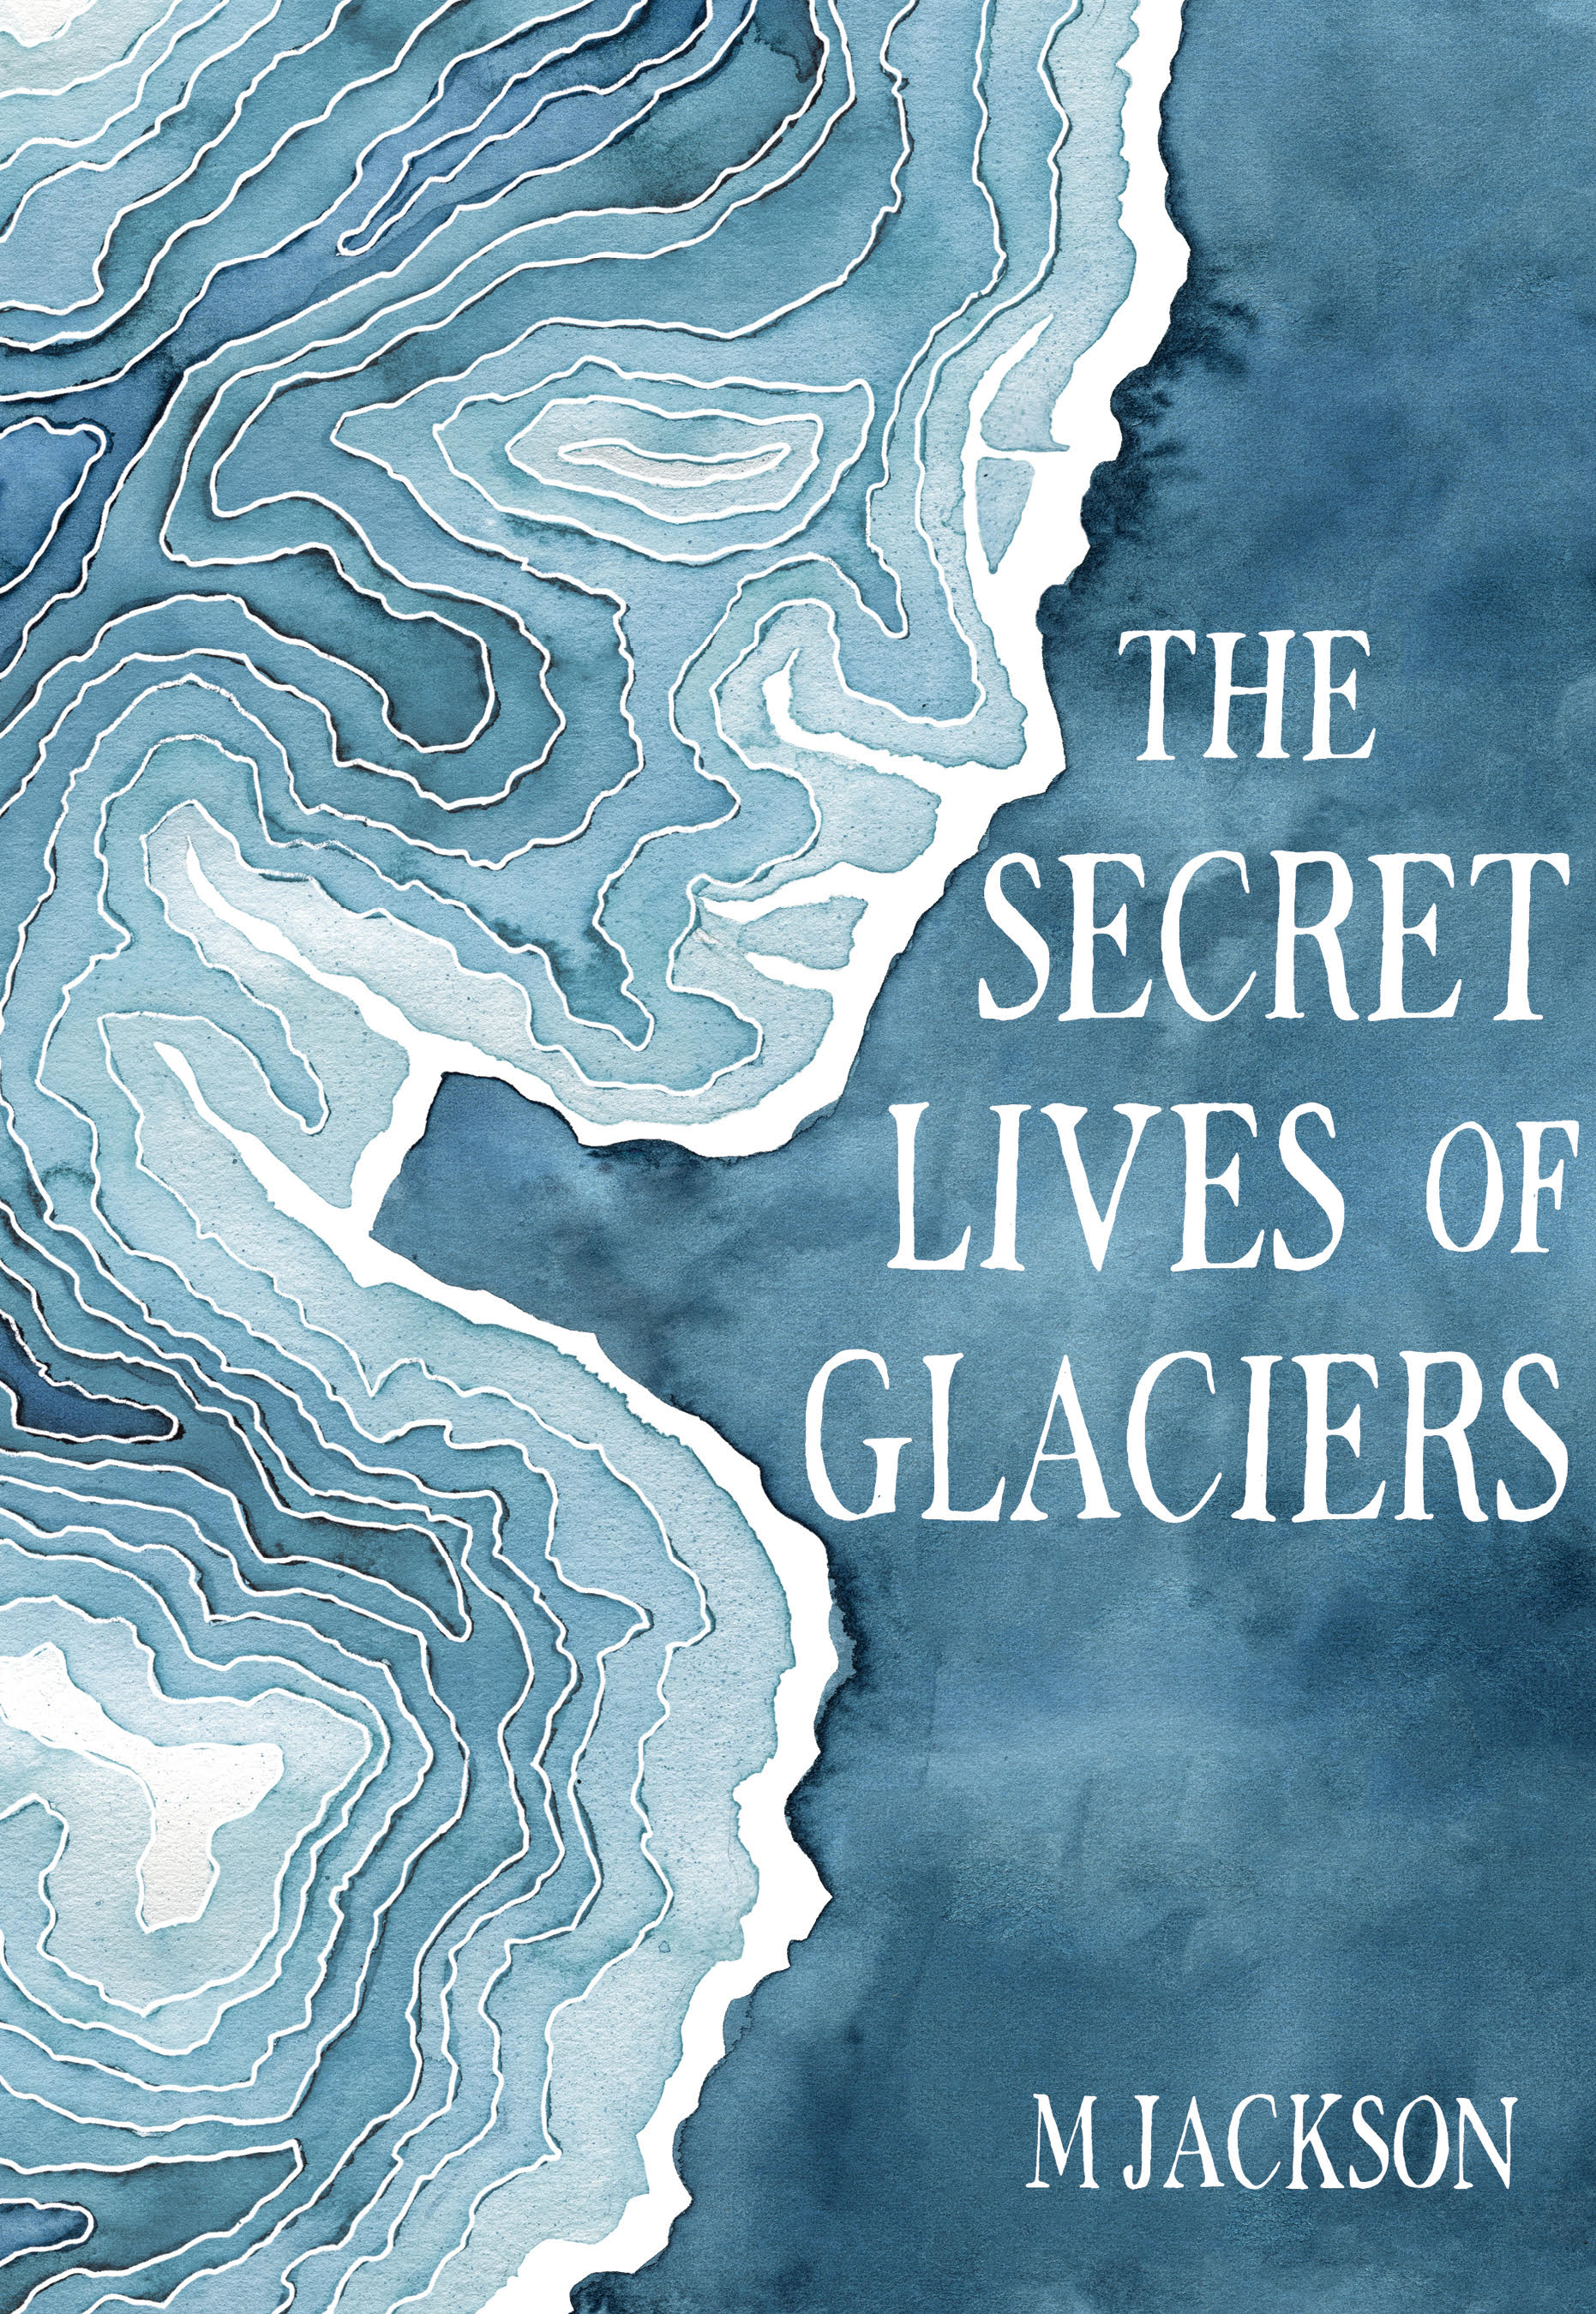 The Secret Lives of Glaciers